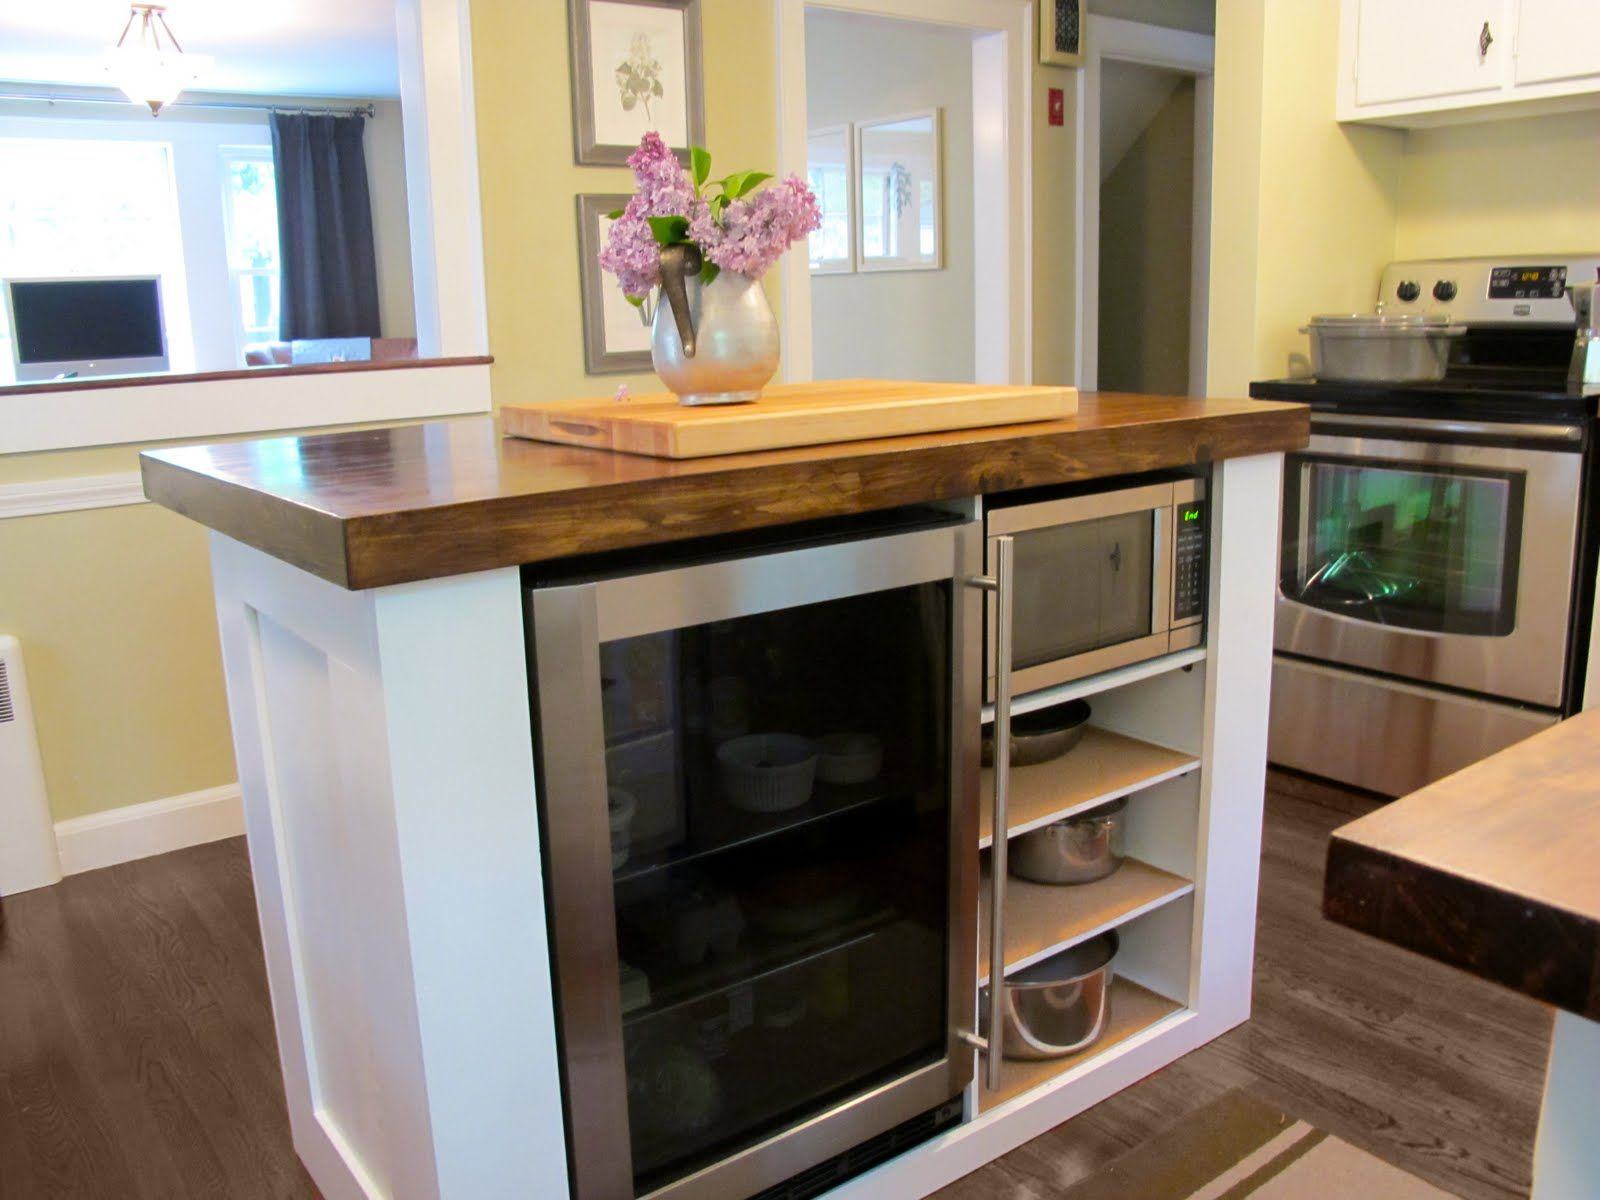 Kitchen Island | DIY Kitchen Island with Built-In Refridgerator - Jenny Steffens Hobick